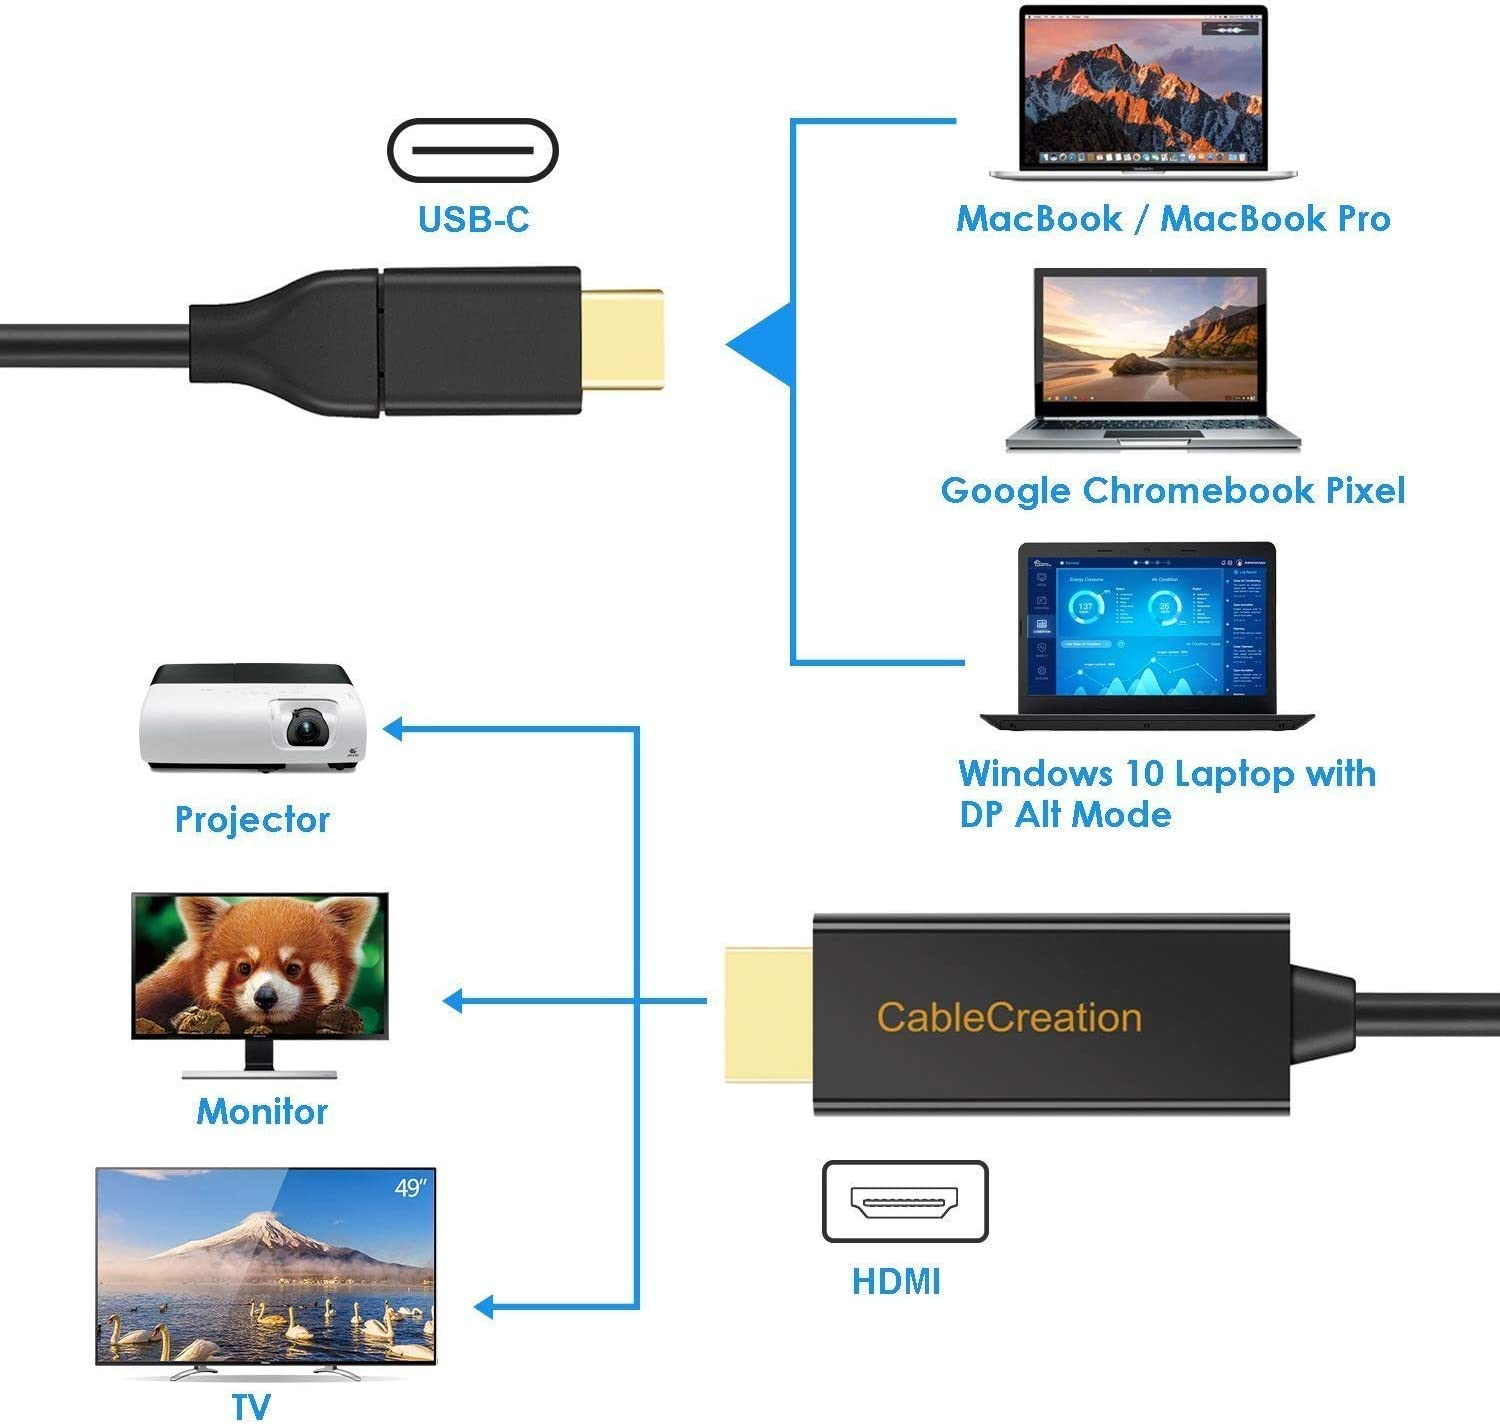 USB C to HDMI 2.0 10ft//3M Long Cable 4K60Hz Galaxy S20//10//9 Yoga 920 LG V30 Surface Go CableCreation Type C to HDMI Thunderbolt 3 Compatible for MacBook Pro//Air//iPad Pro 2020 2019 XPS 15 13